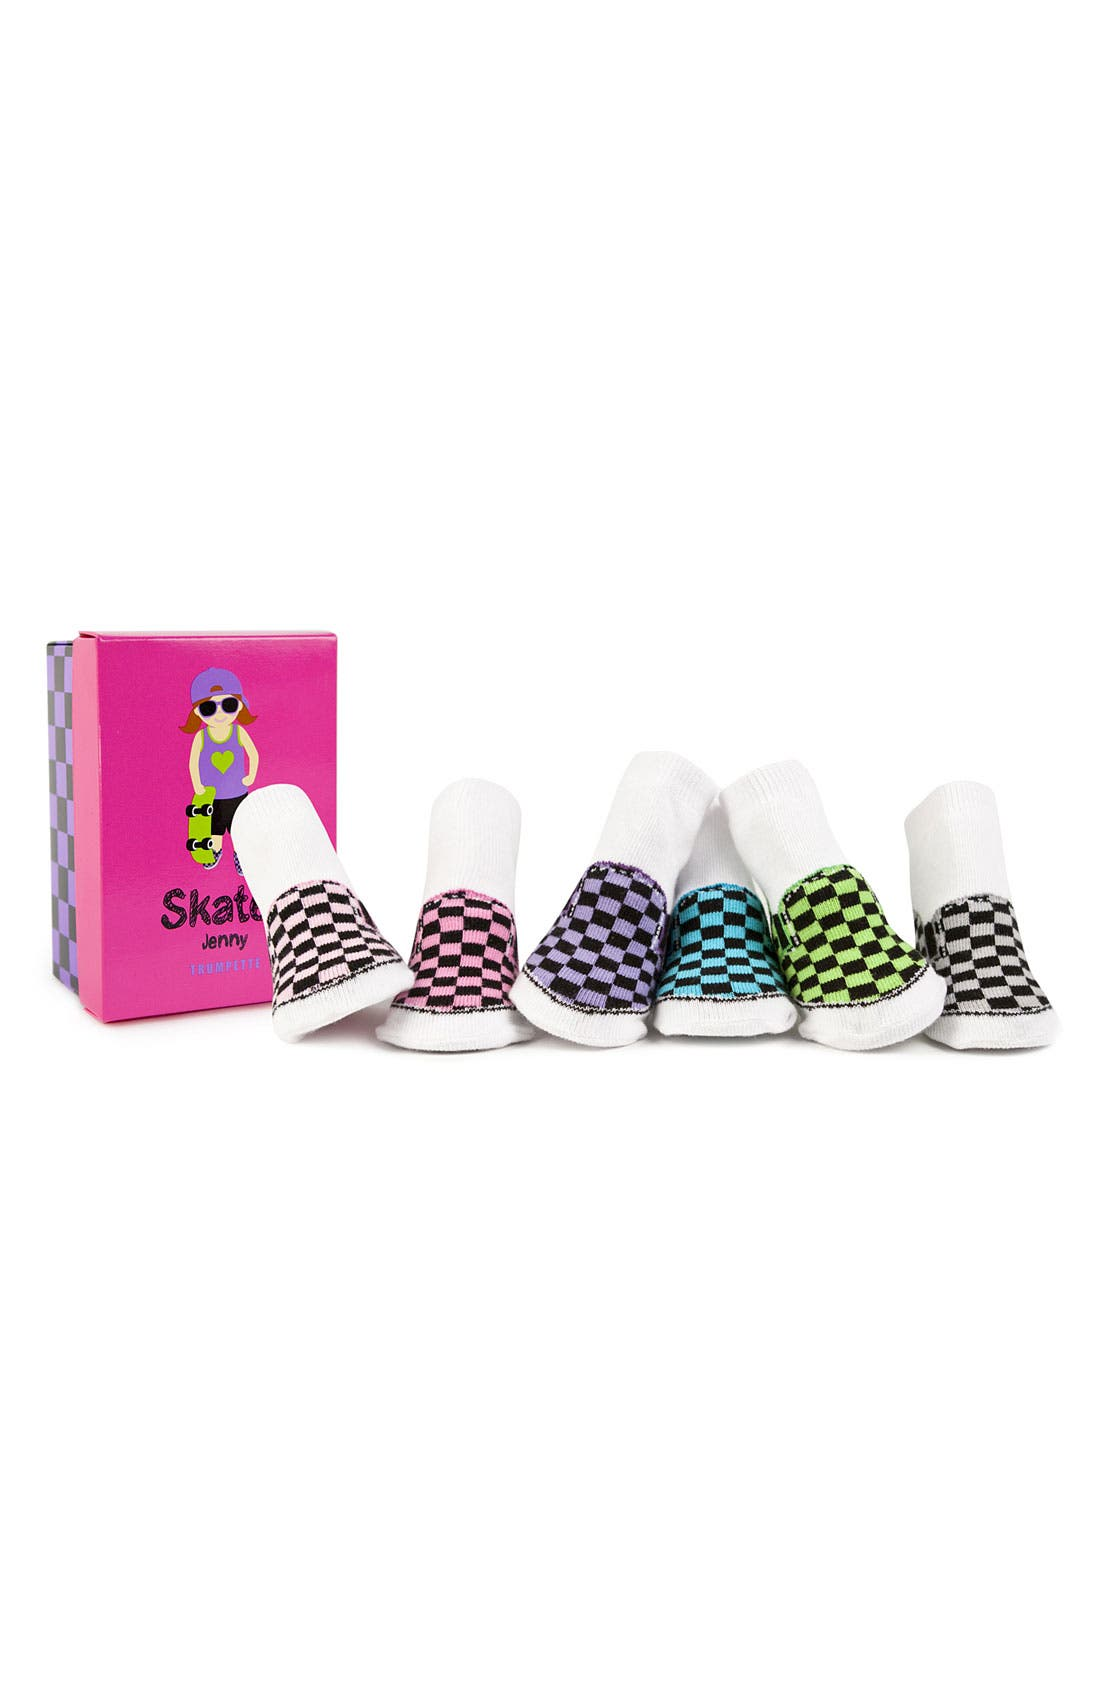 Alternate Image 1 Selected - Trumpette 'Skater Jenny' Socks (6-Pack)(Baby Girls)